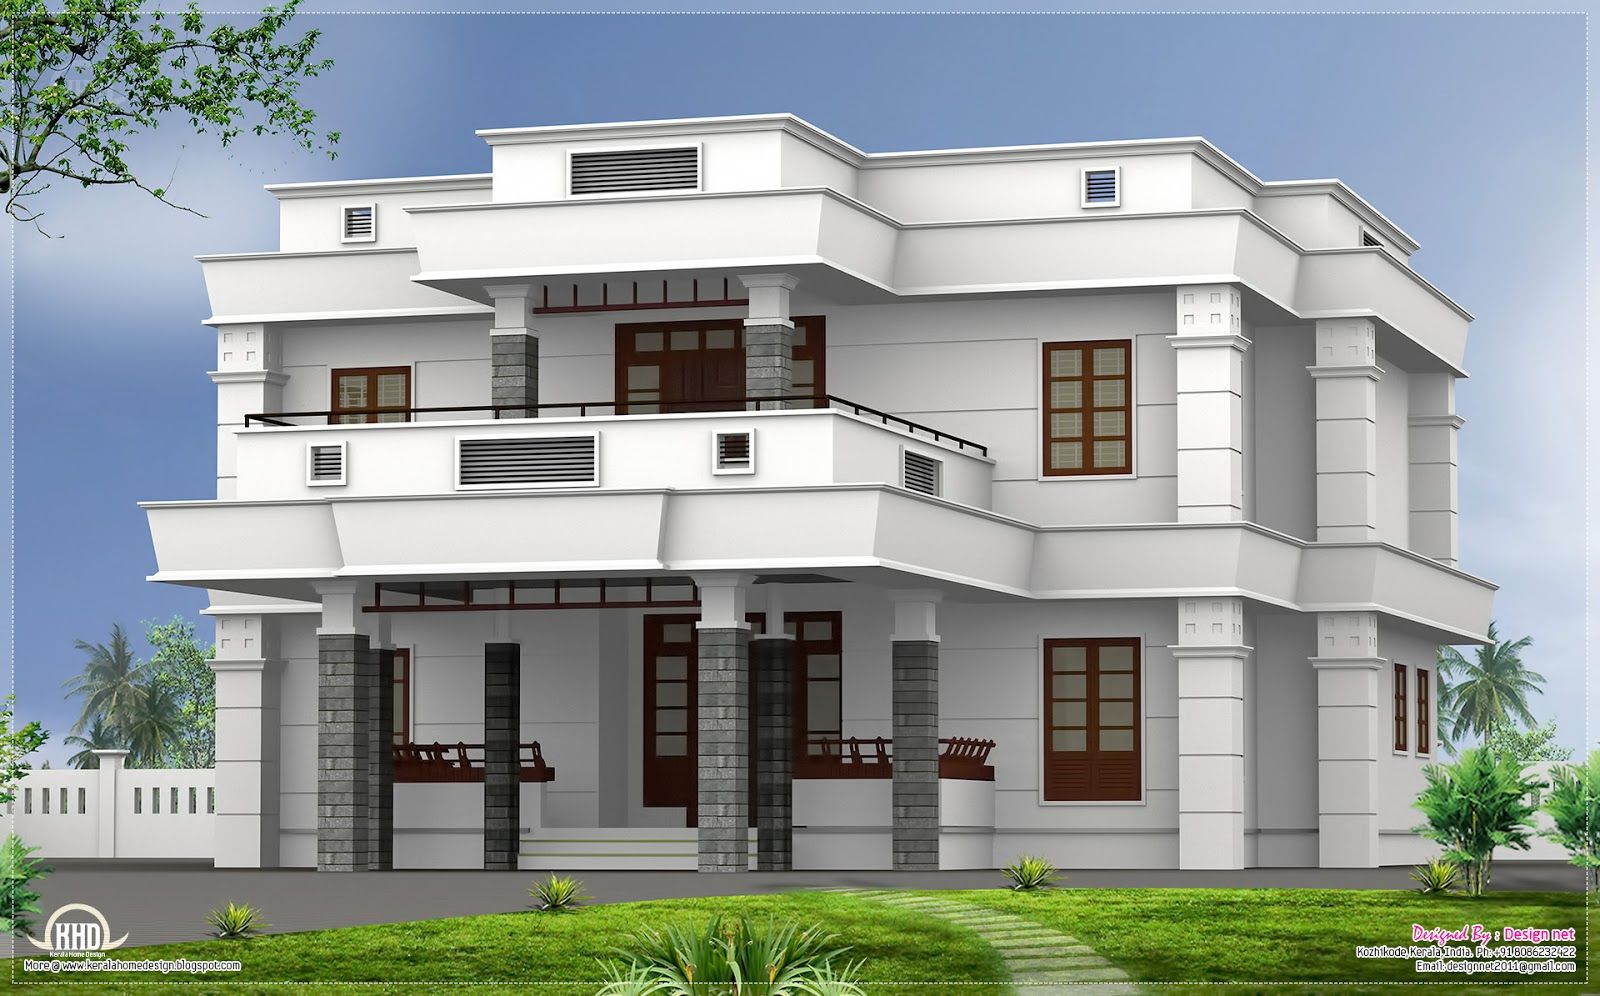 Flat roof homes designs bhk modern flat roof house for Building type house design